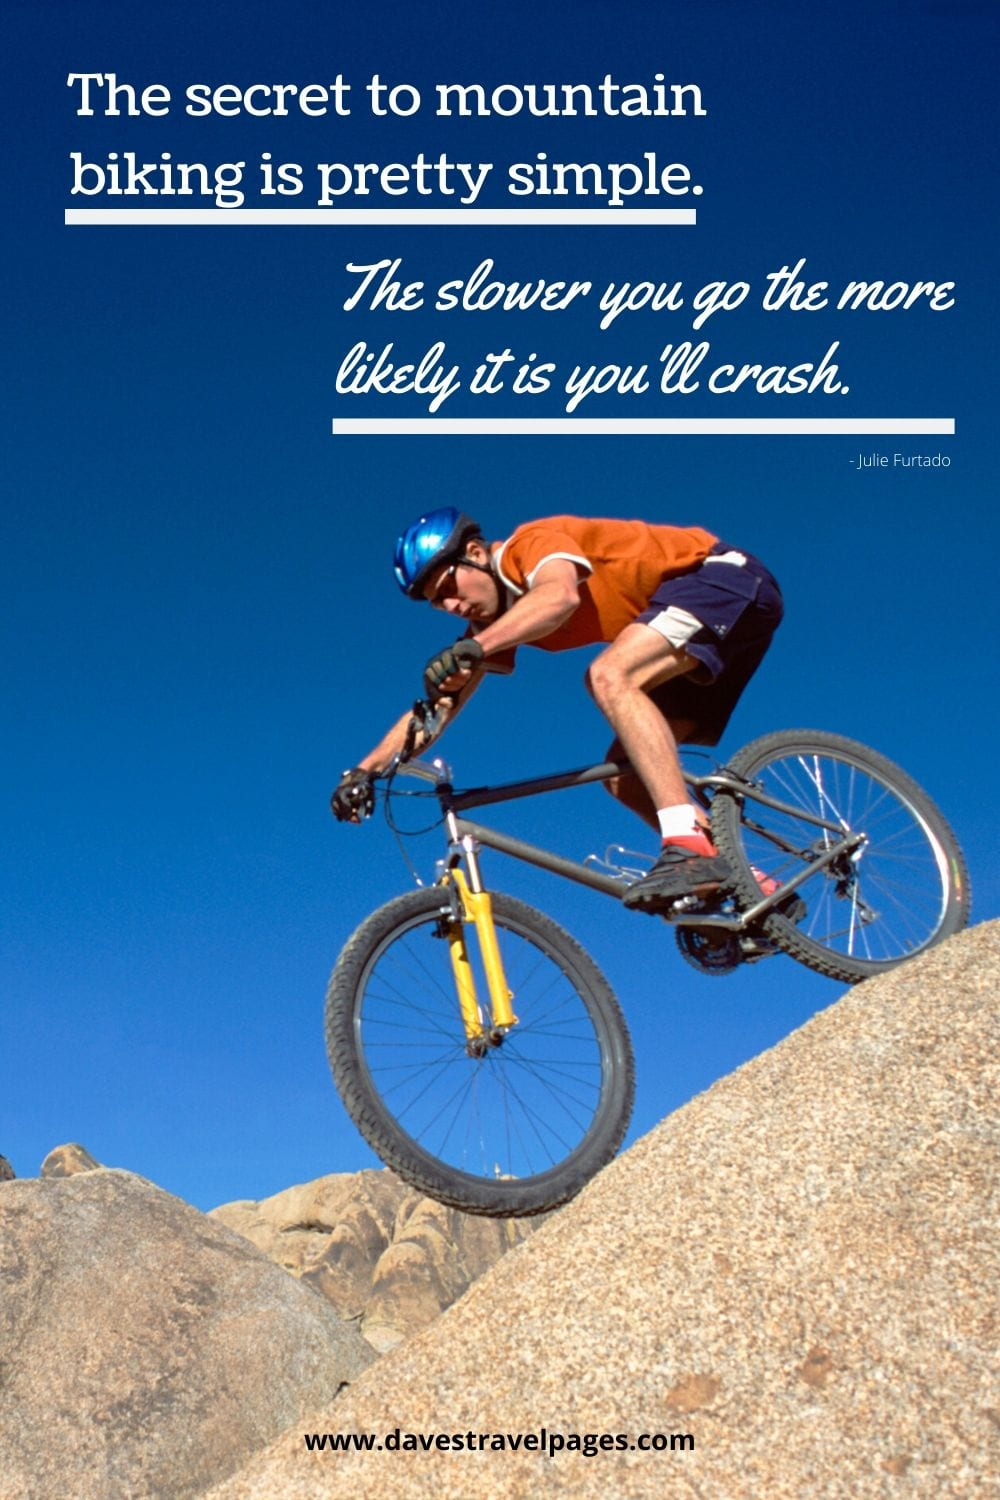 Mountain biking quote - The secret to mountain biking is pretty simple. The slower you go the more likely it is you'll crash. ~Julie Furtado